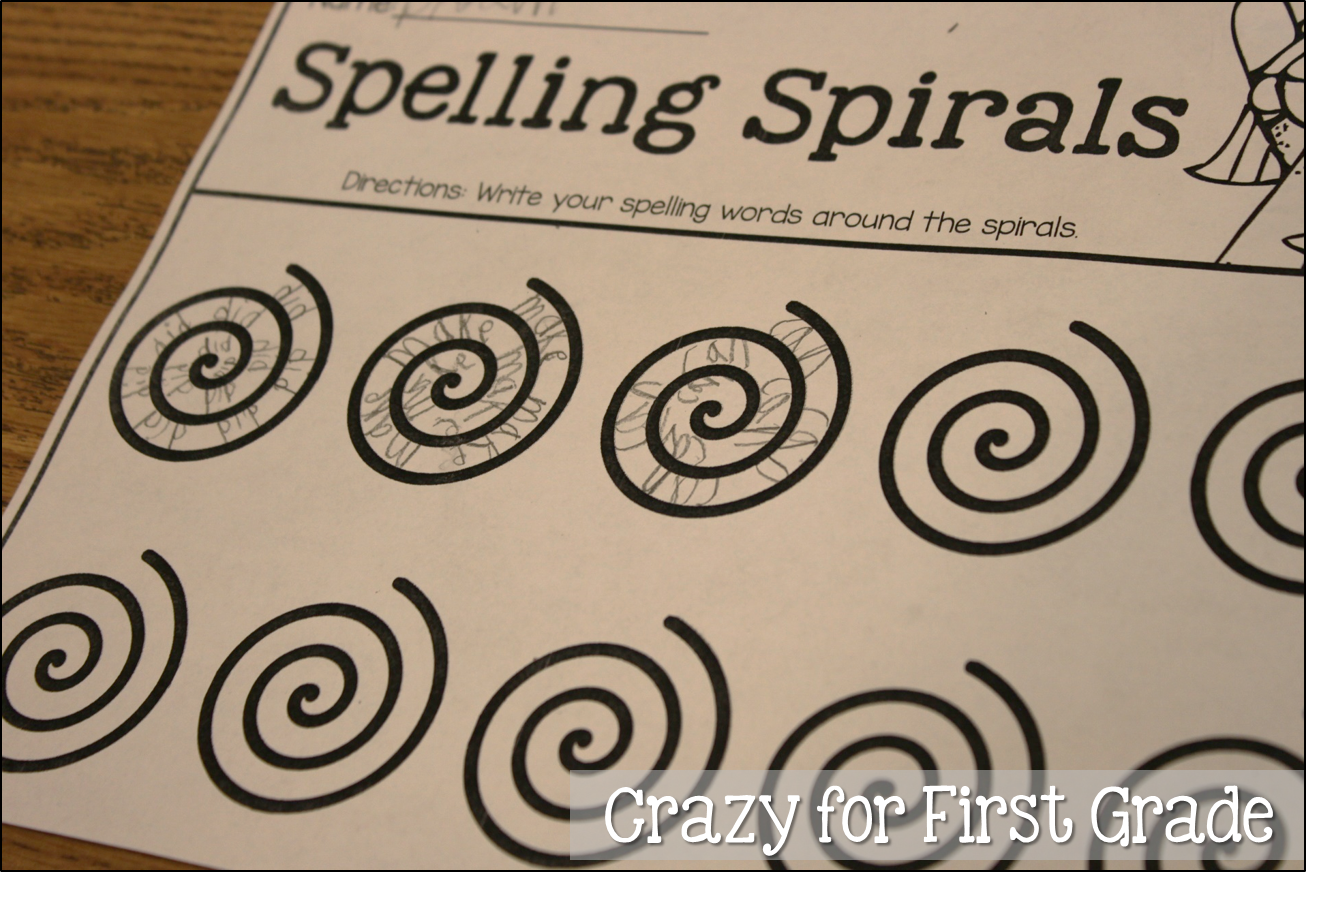 Creative way to get kids practicing sight words or spelling words ...